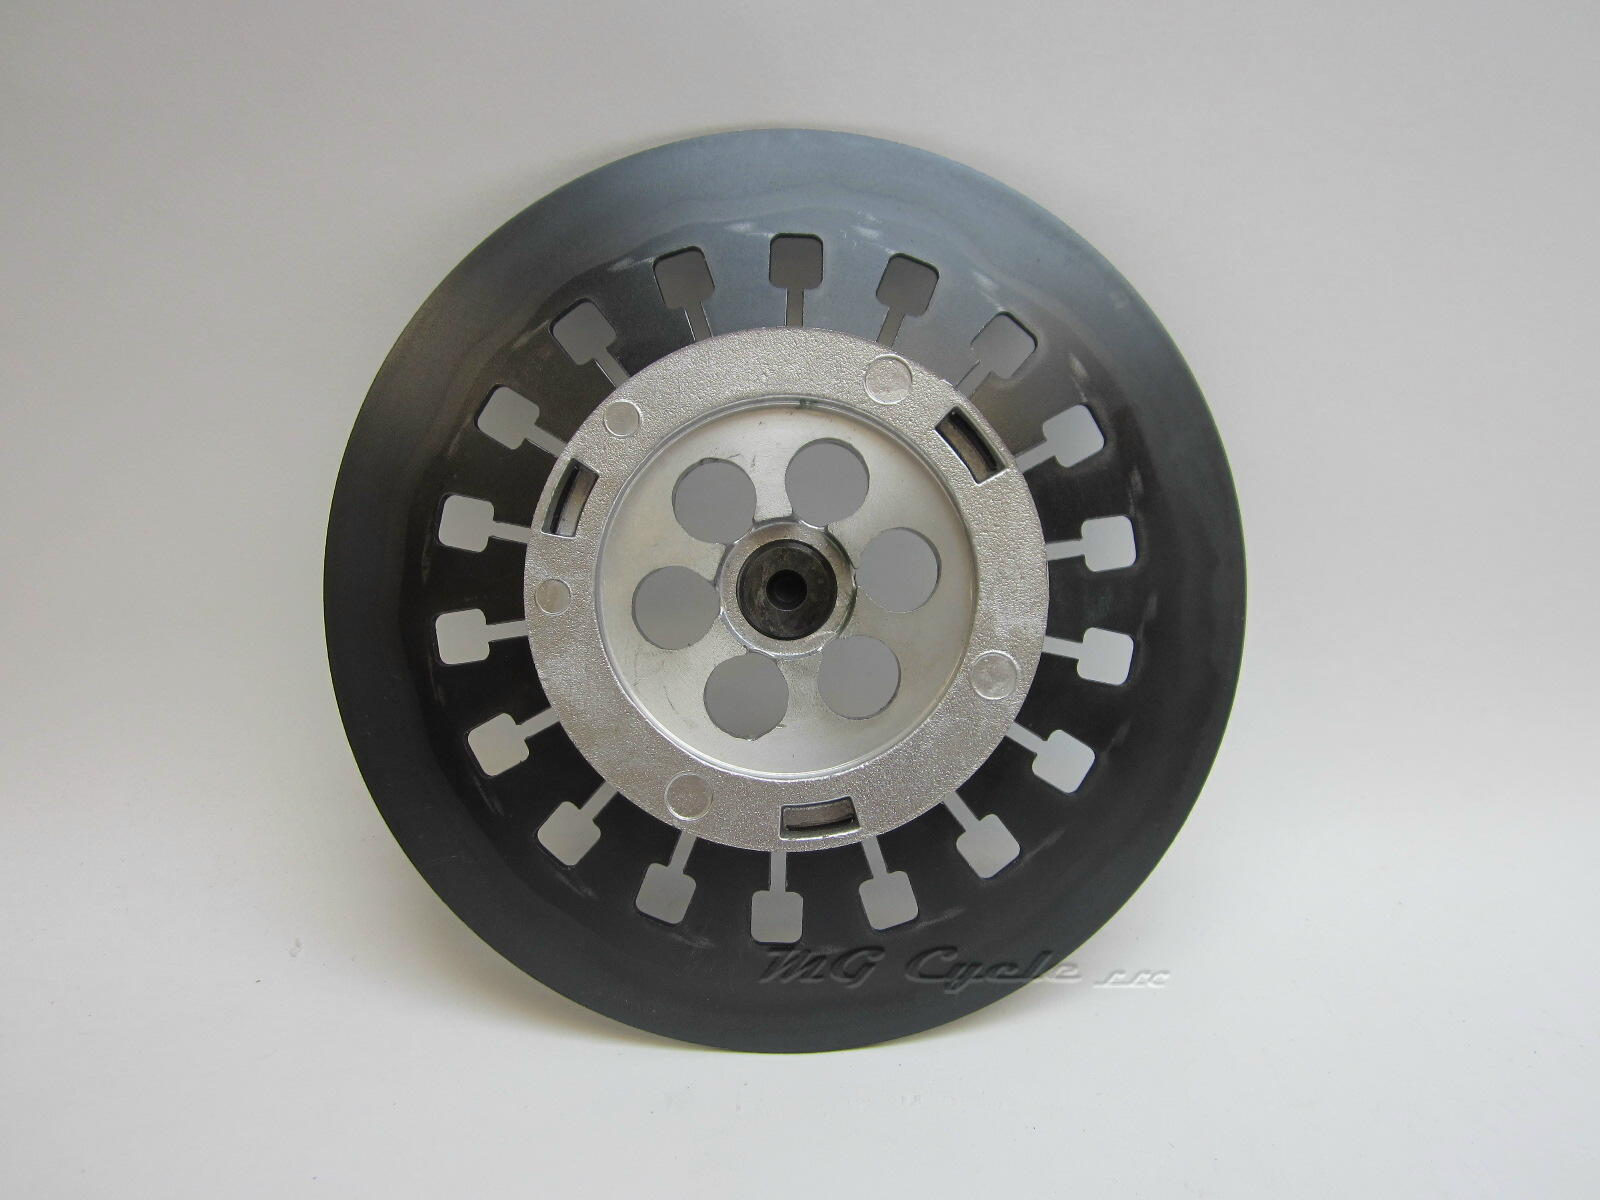 spring plate assembly for RAM low inertia clutch kit, 5 speeds